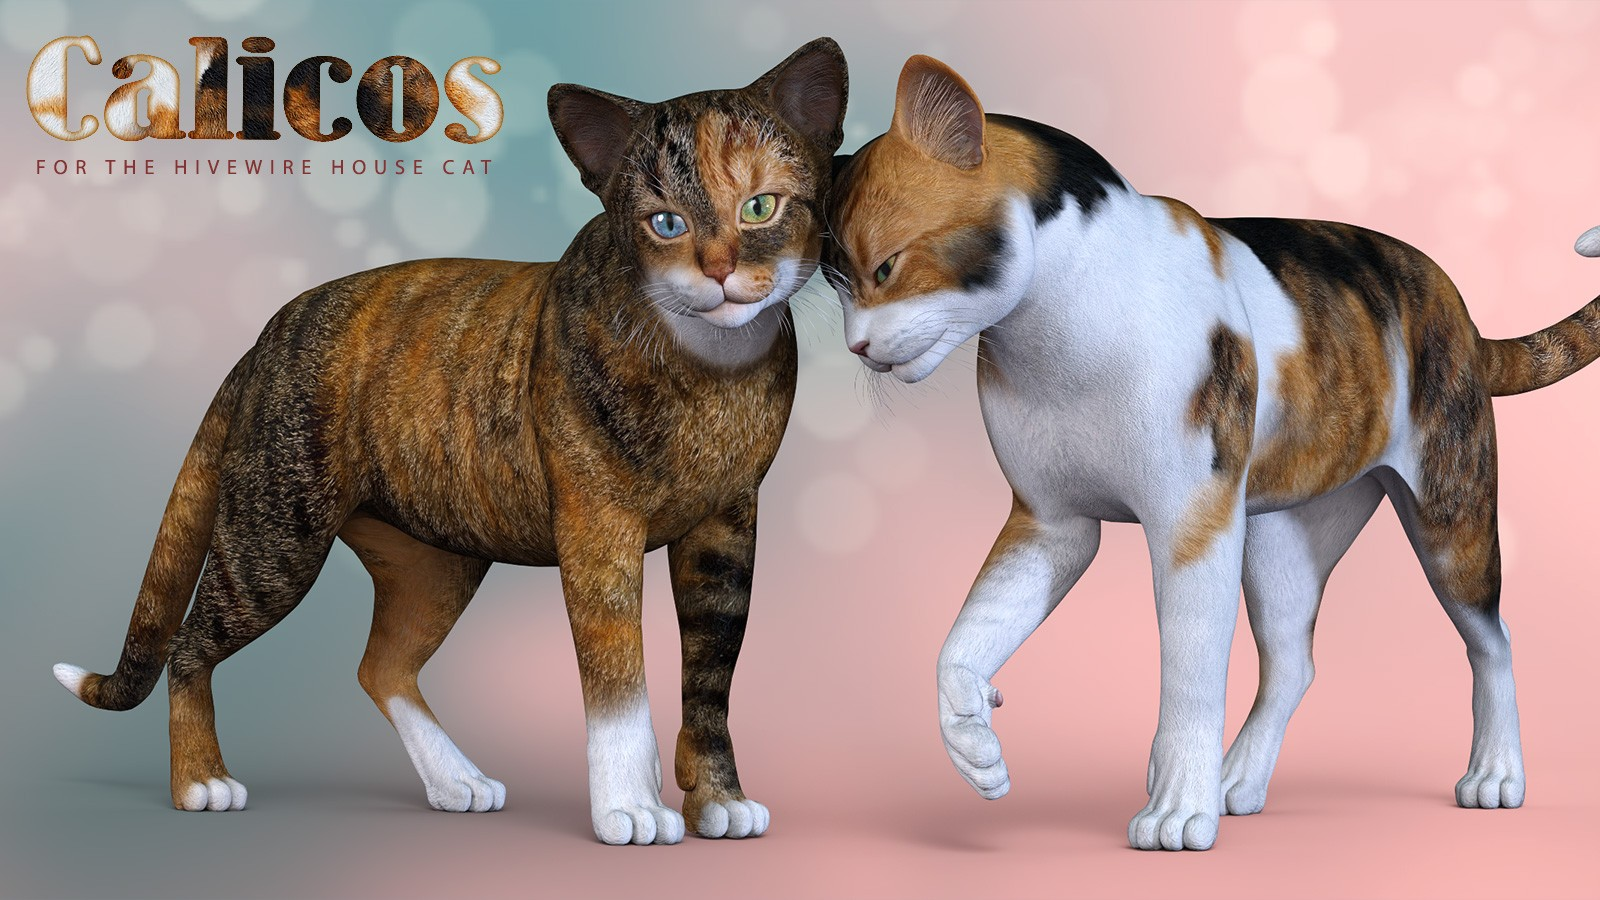 11929-cwrw-calicos-for-the-hw-house-cat-main.jpg